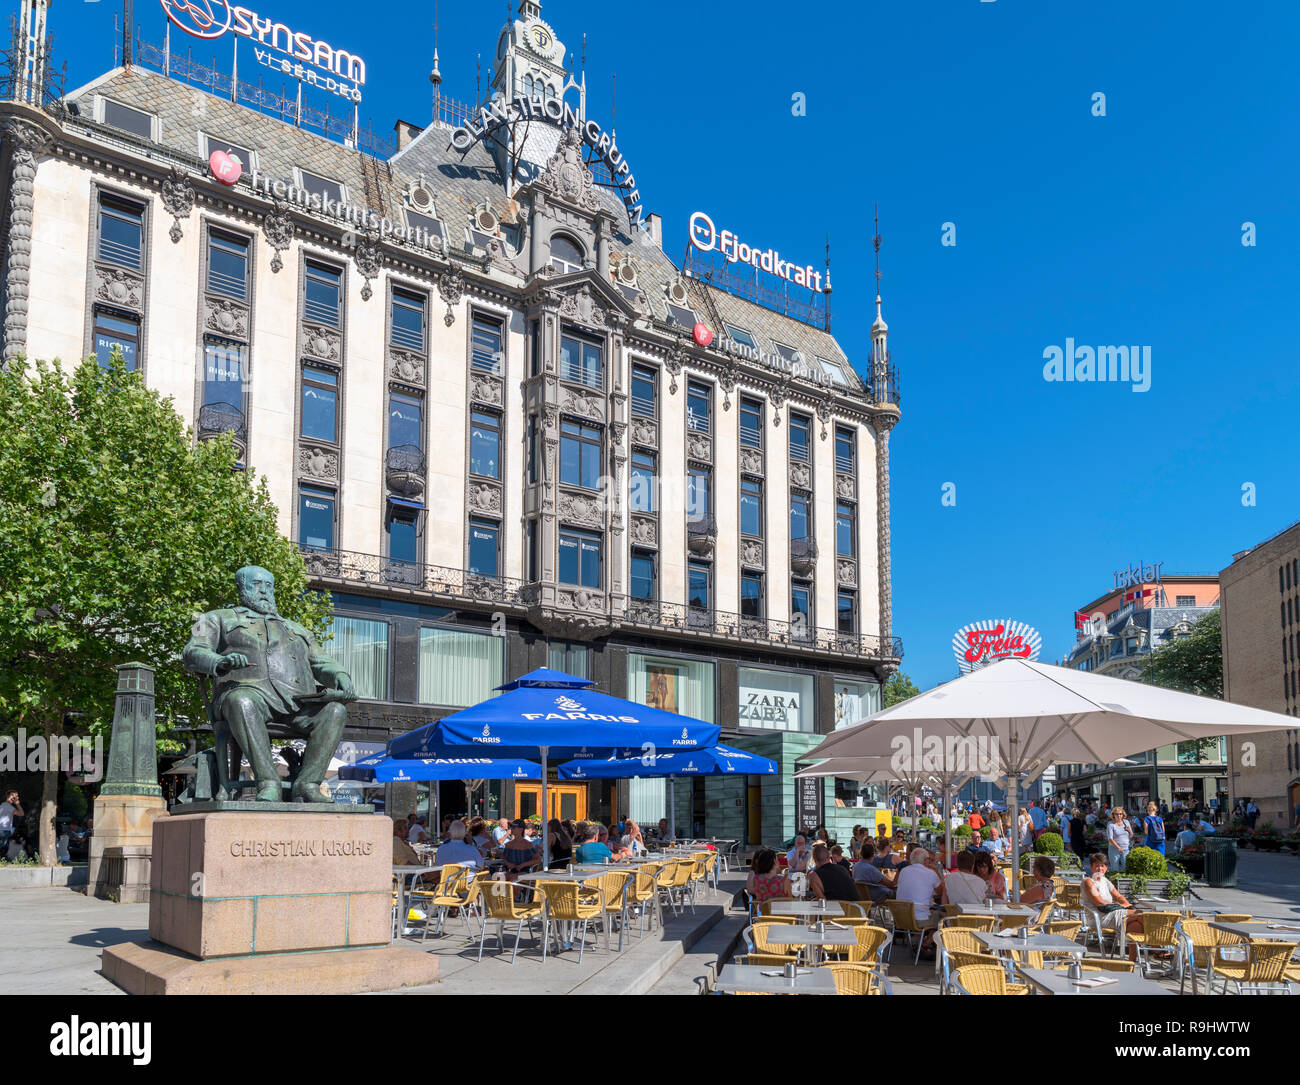 Joe the Juice cafe on the corner of Lille Grensen and Karl Johans Gate in the city centre, Oslo, Norway - Stock Image